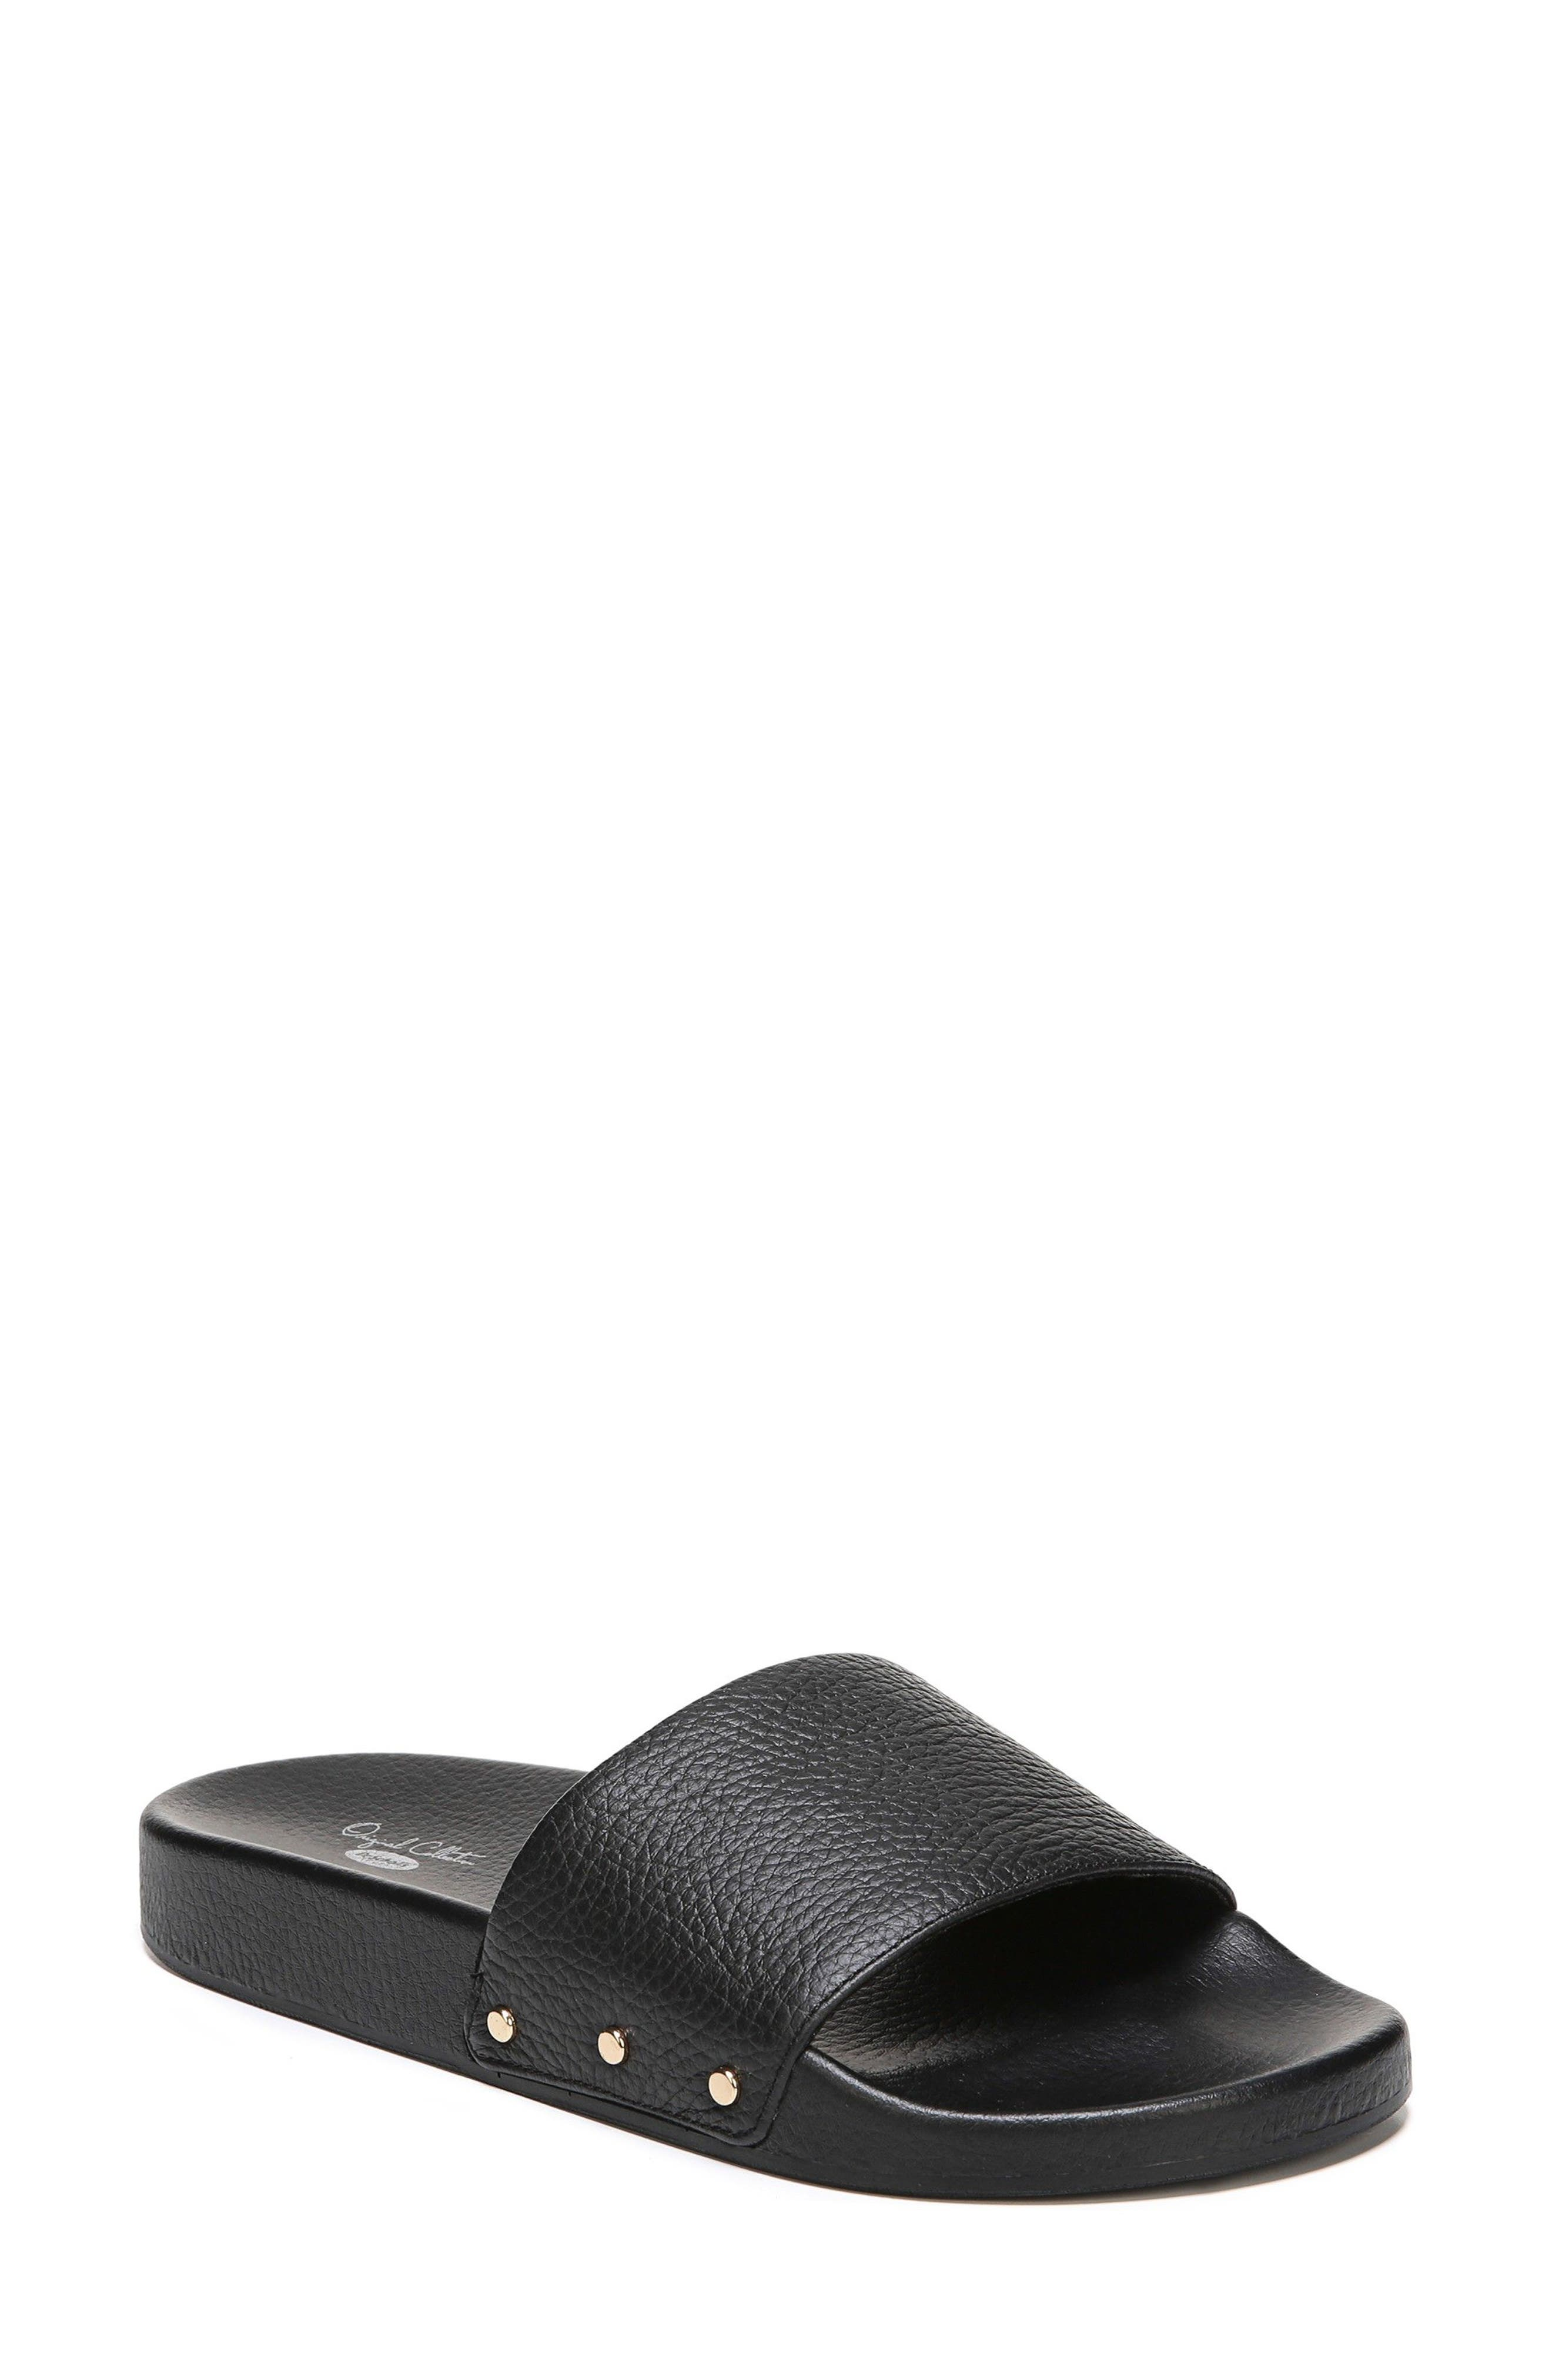 DR. SCHOLL'S Pisces Slide Sandal, Main, color, BLACK LEATHER